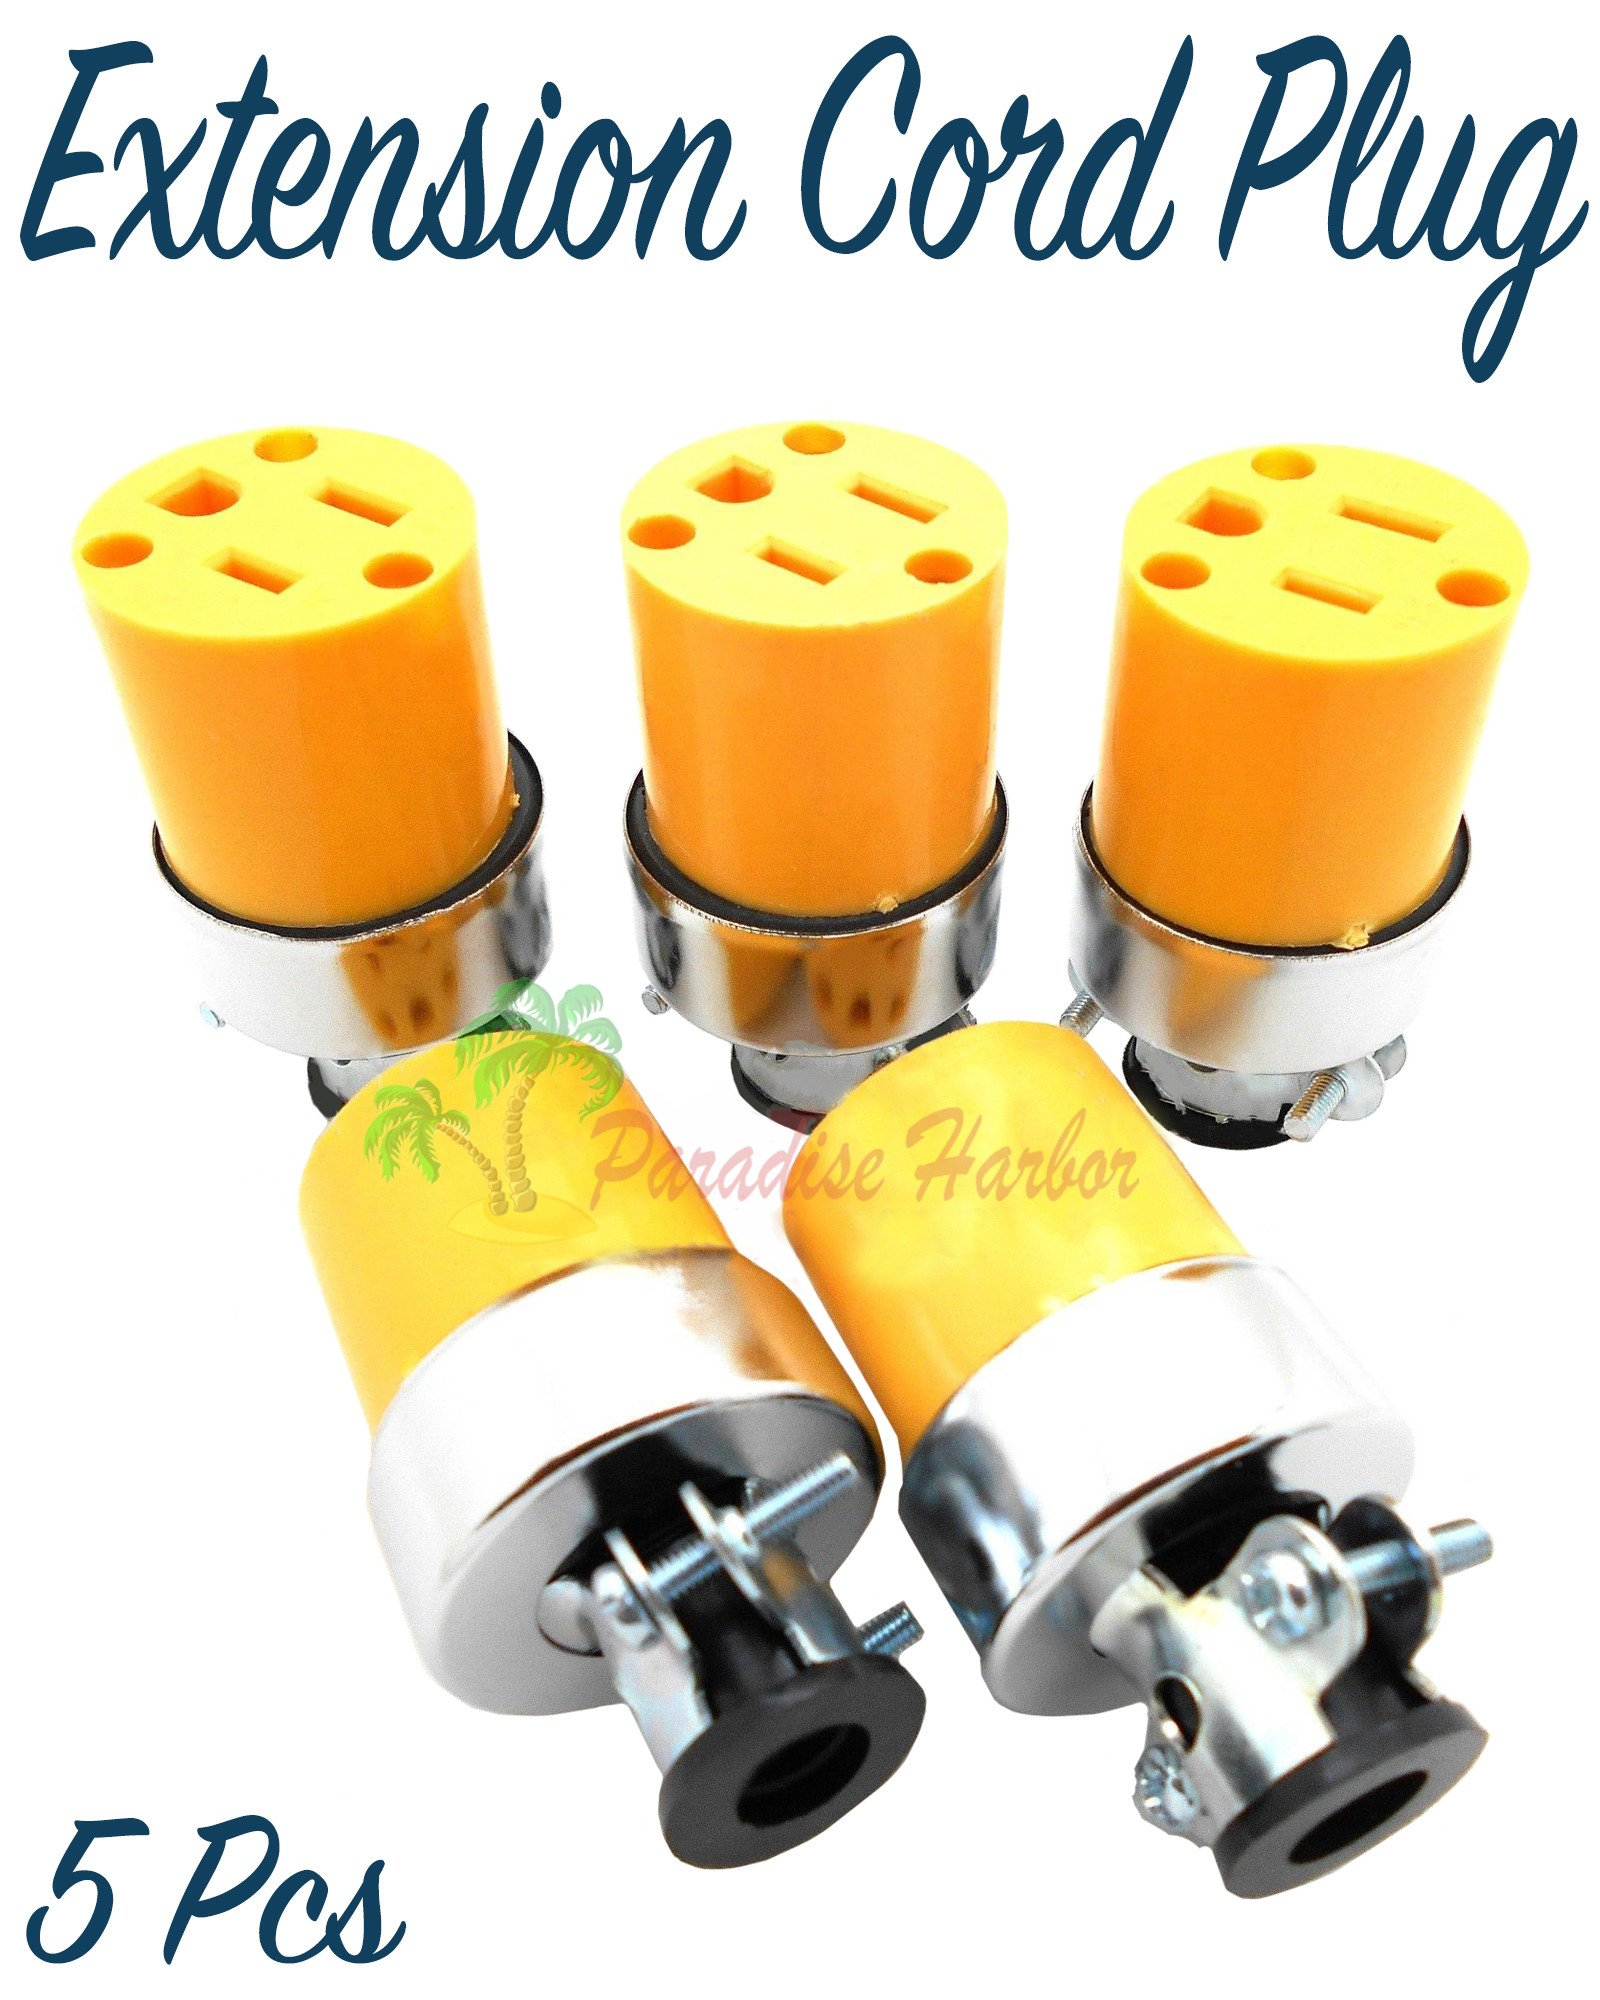 Paradise Harbor 5 Pieces Female Plug Replacement Female Extension Cord Replacement End Electrical Wire Repair Replacement Plug End Set